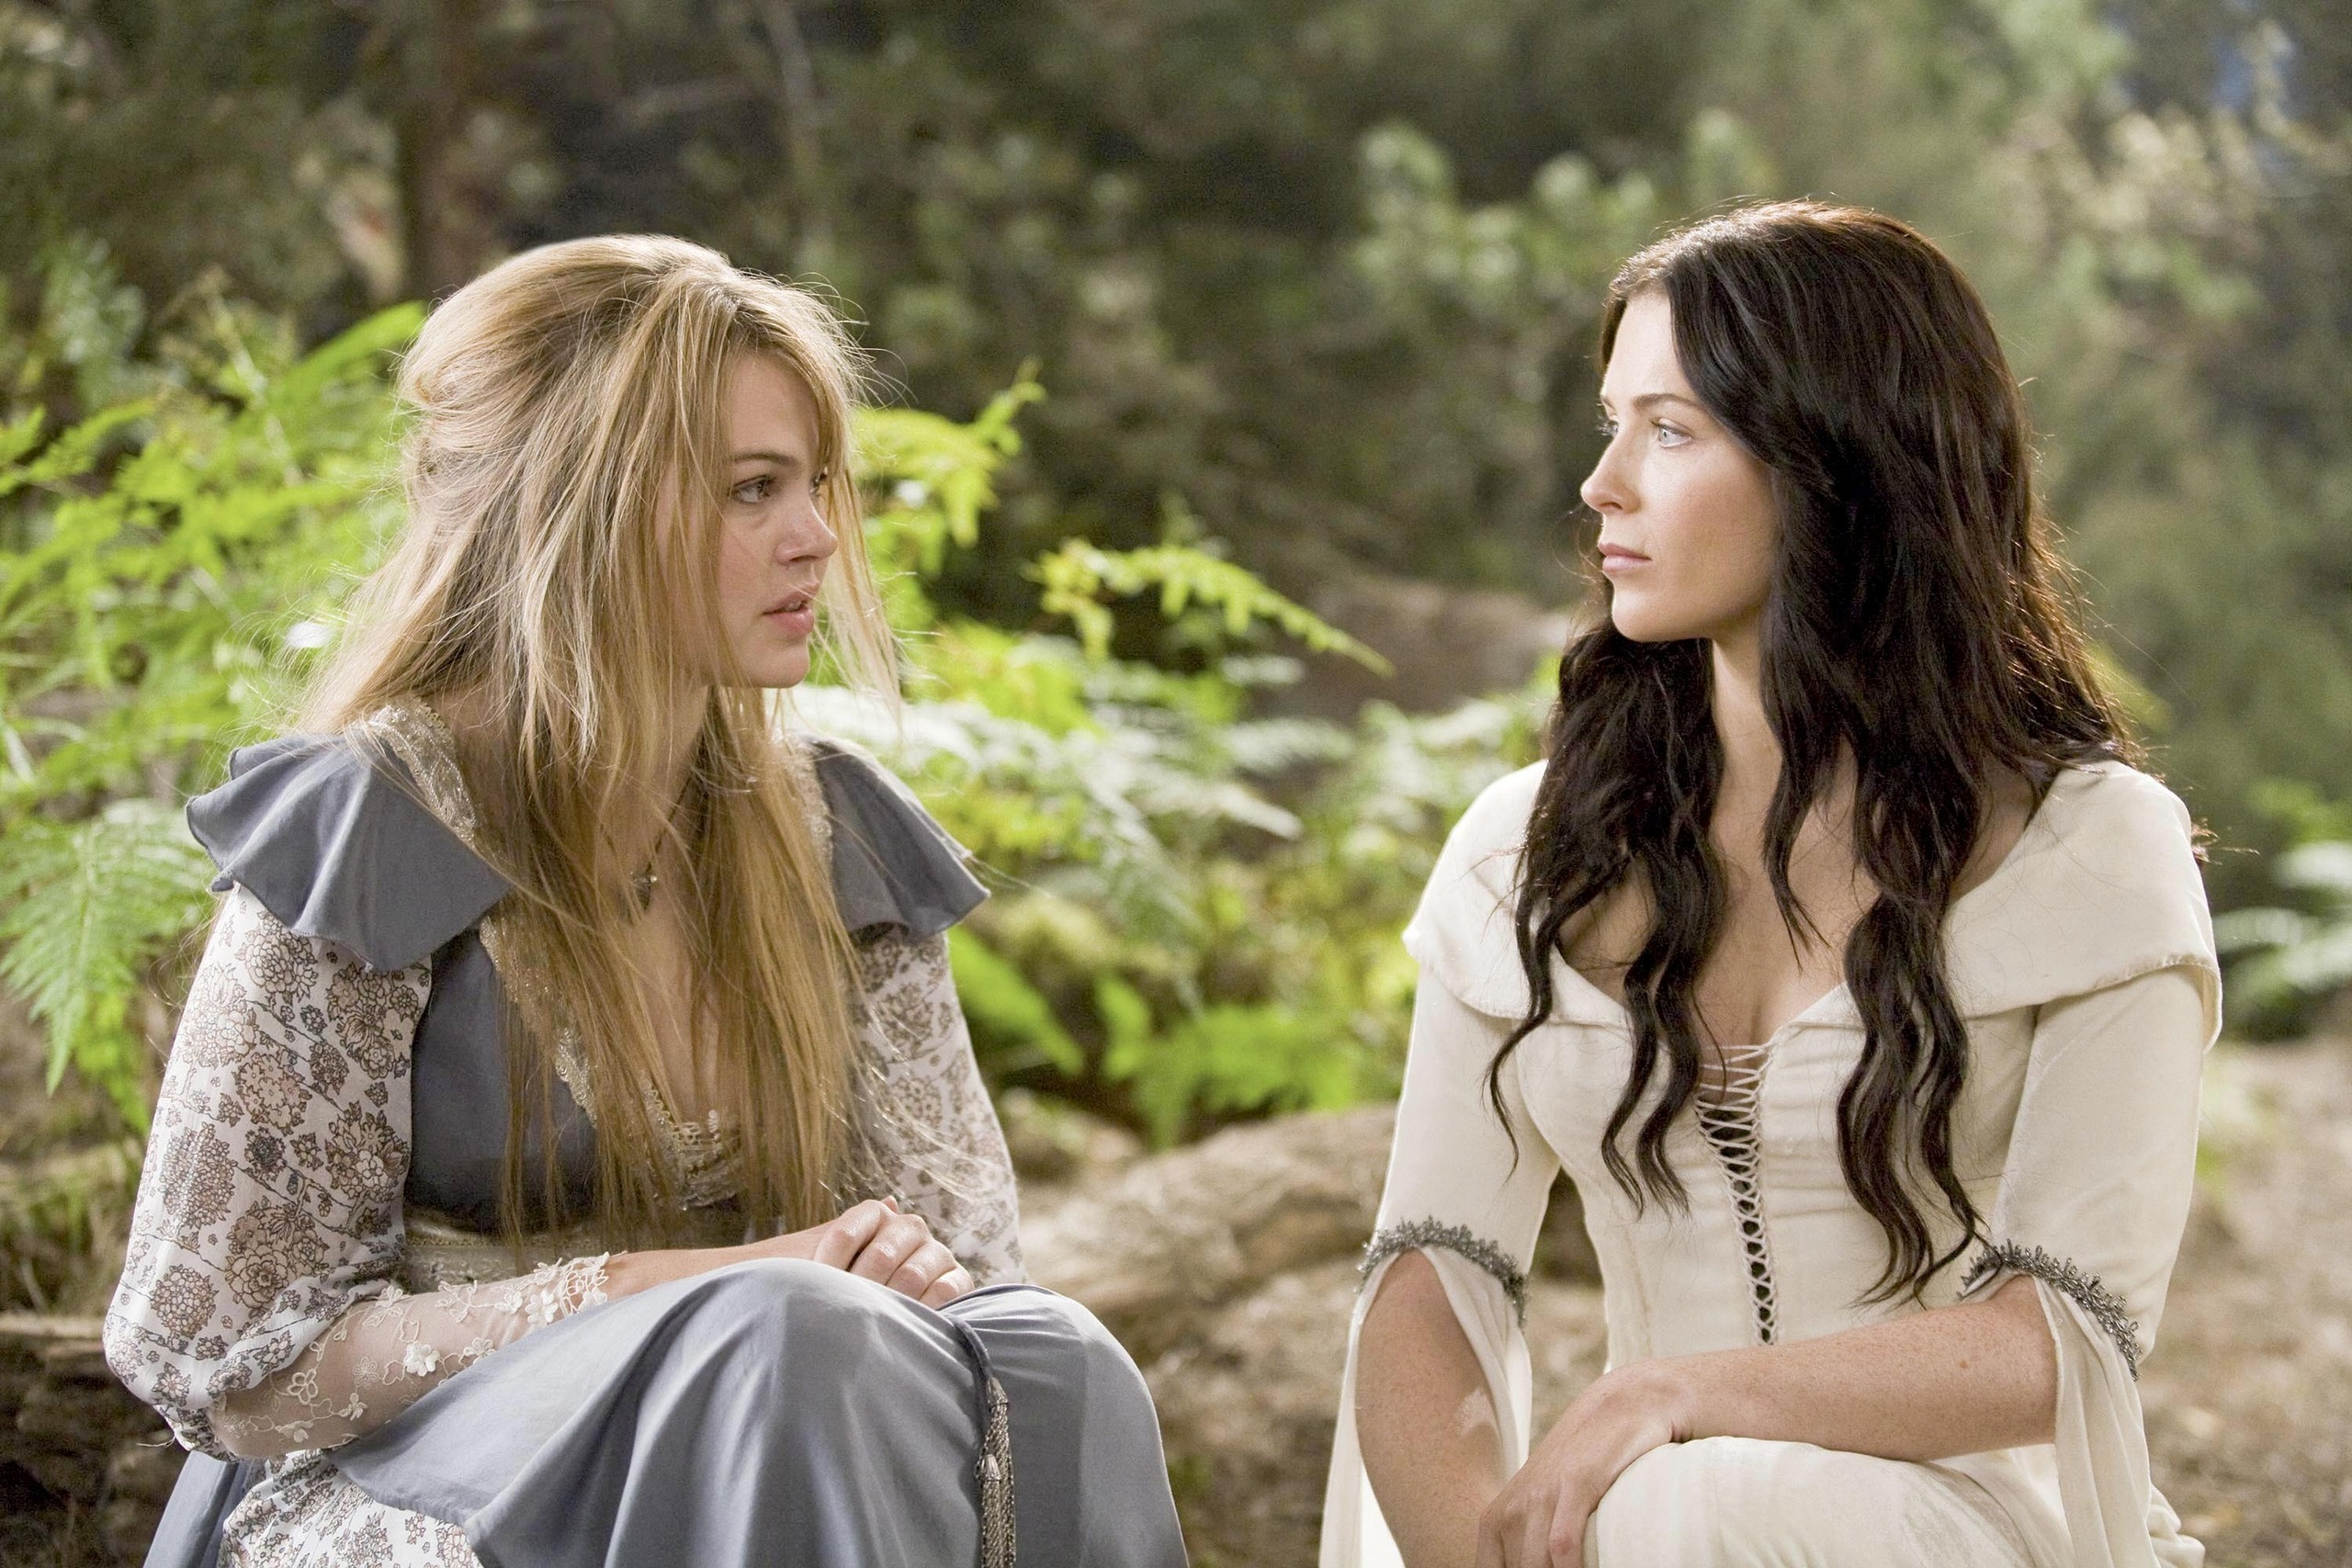 legend of the seeker season 1 episode 3 tubeplus